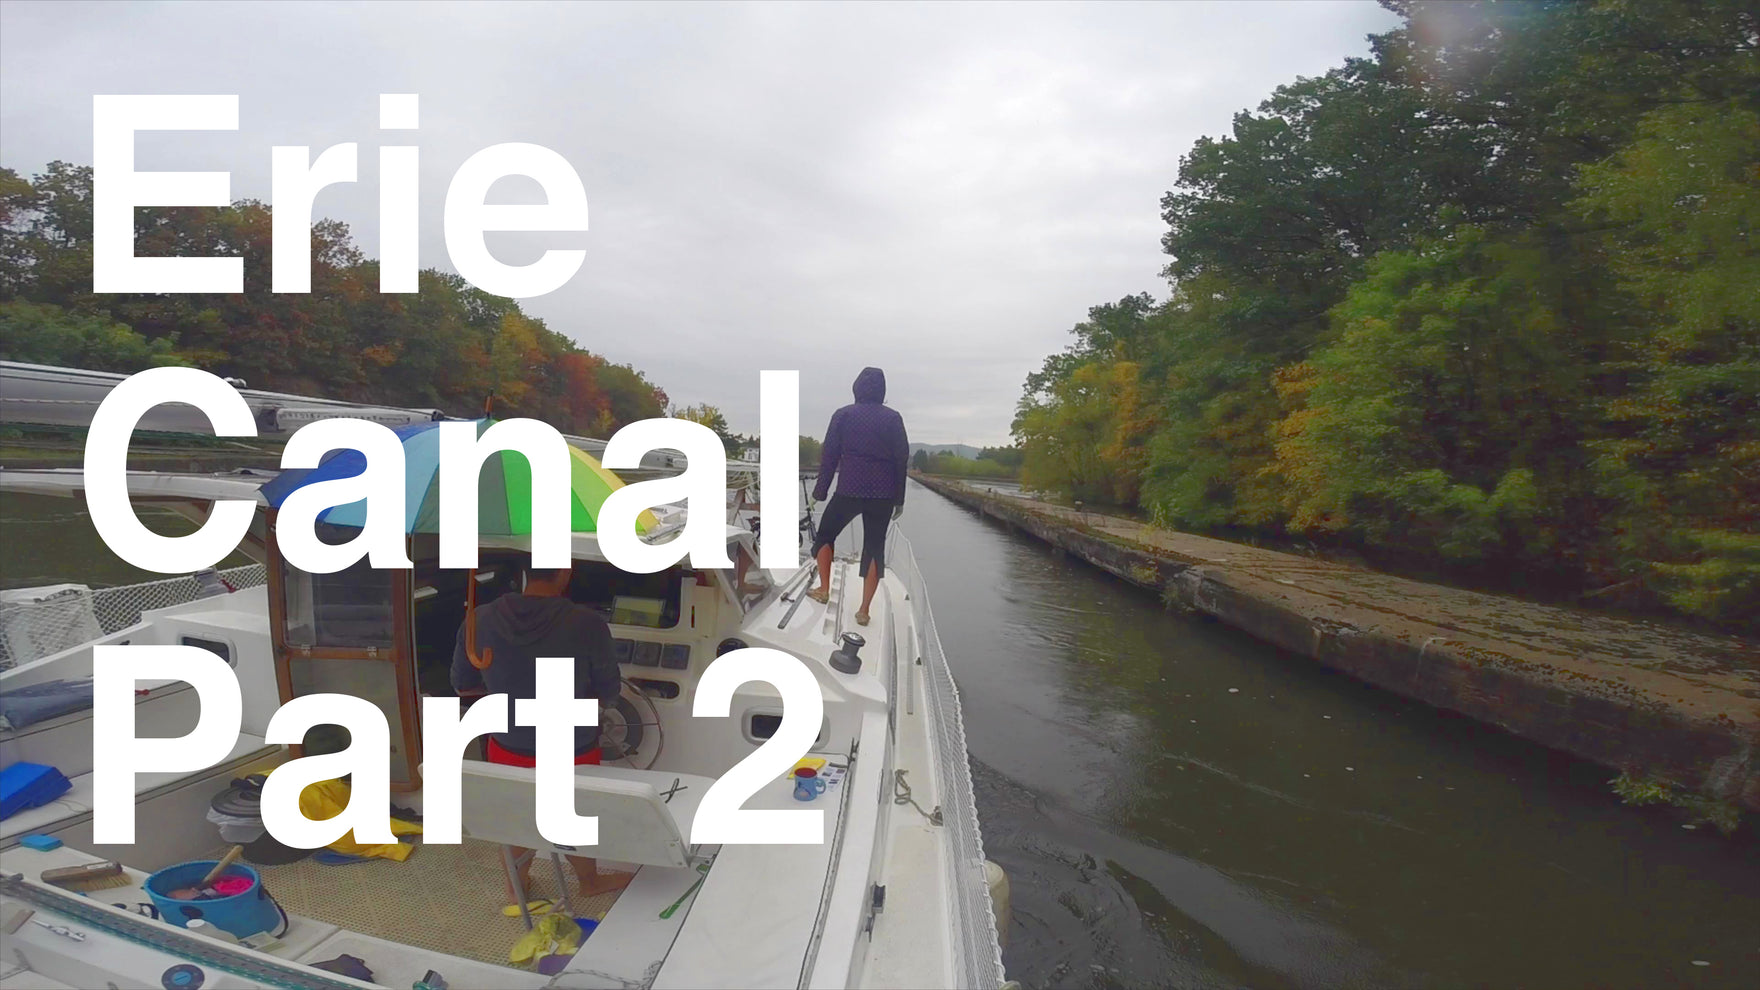 Episode 16 - Erie Canal Part 2